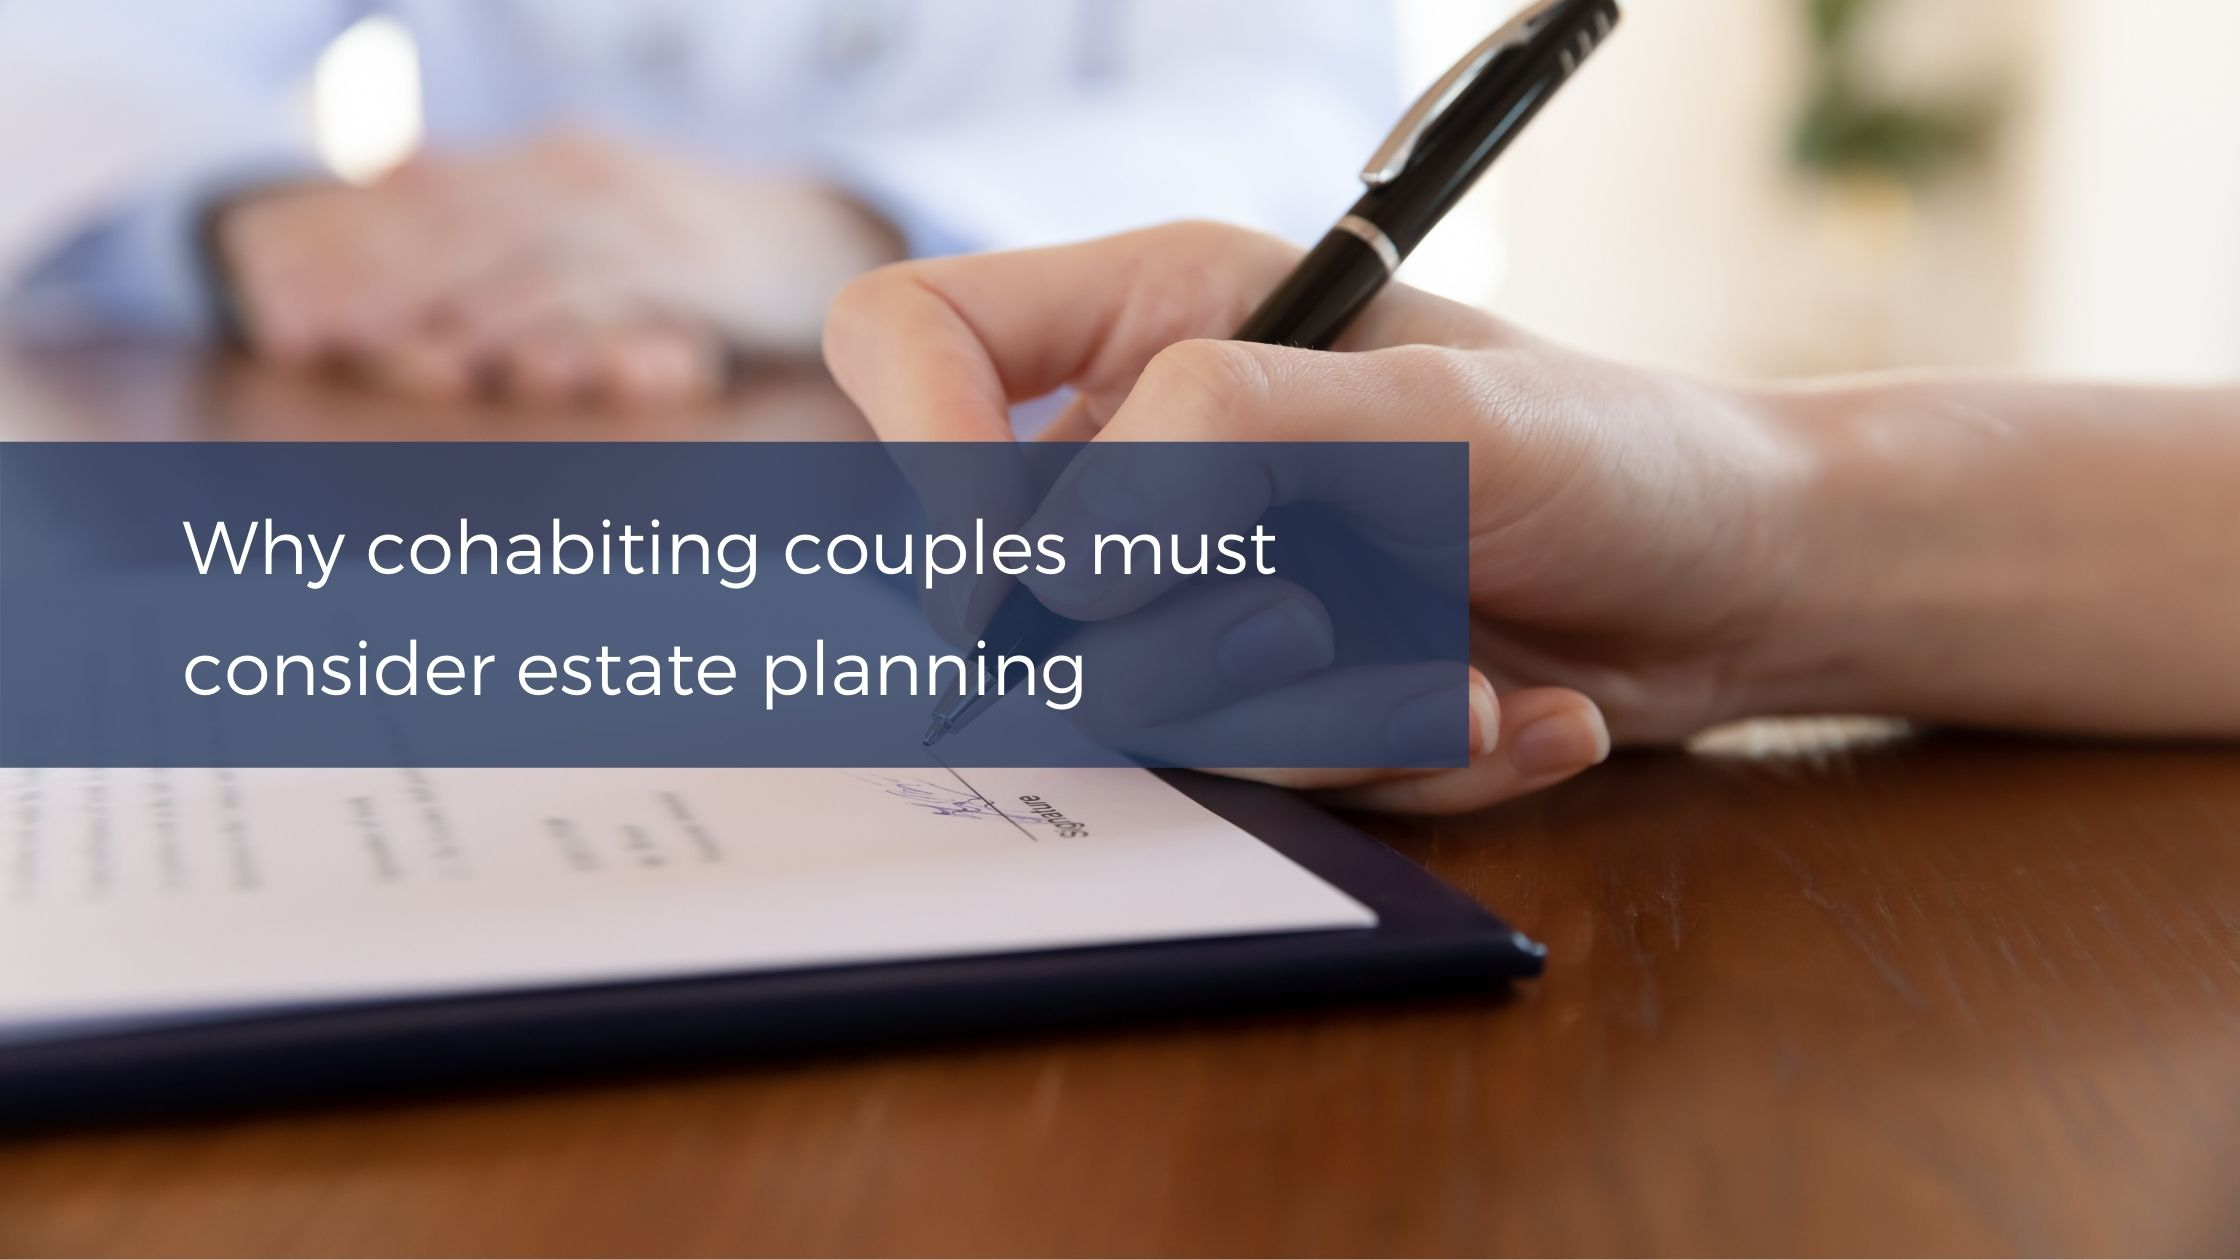 Blog: Why Cohabiting Couples Must Consider Estate Planning